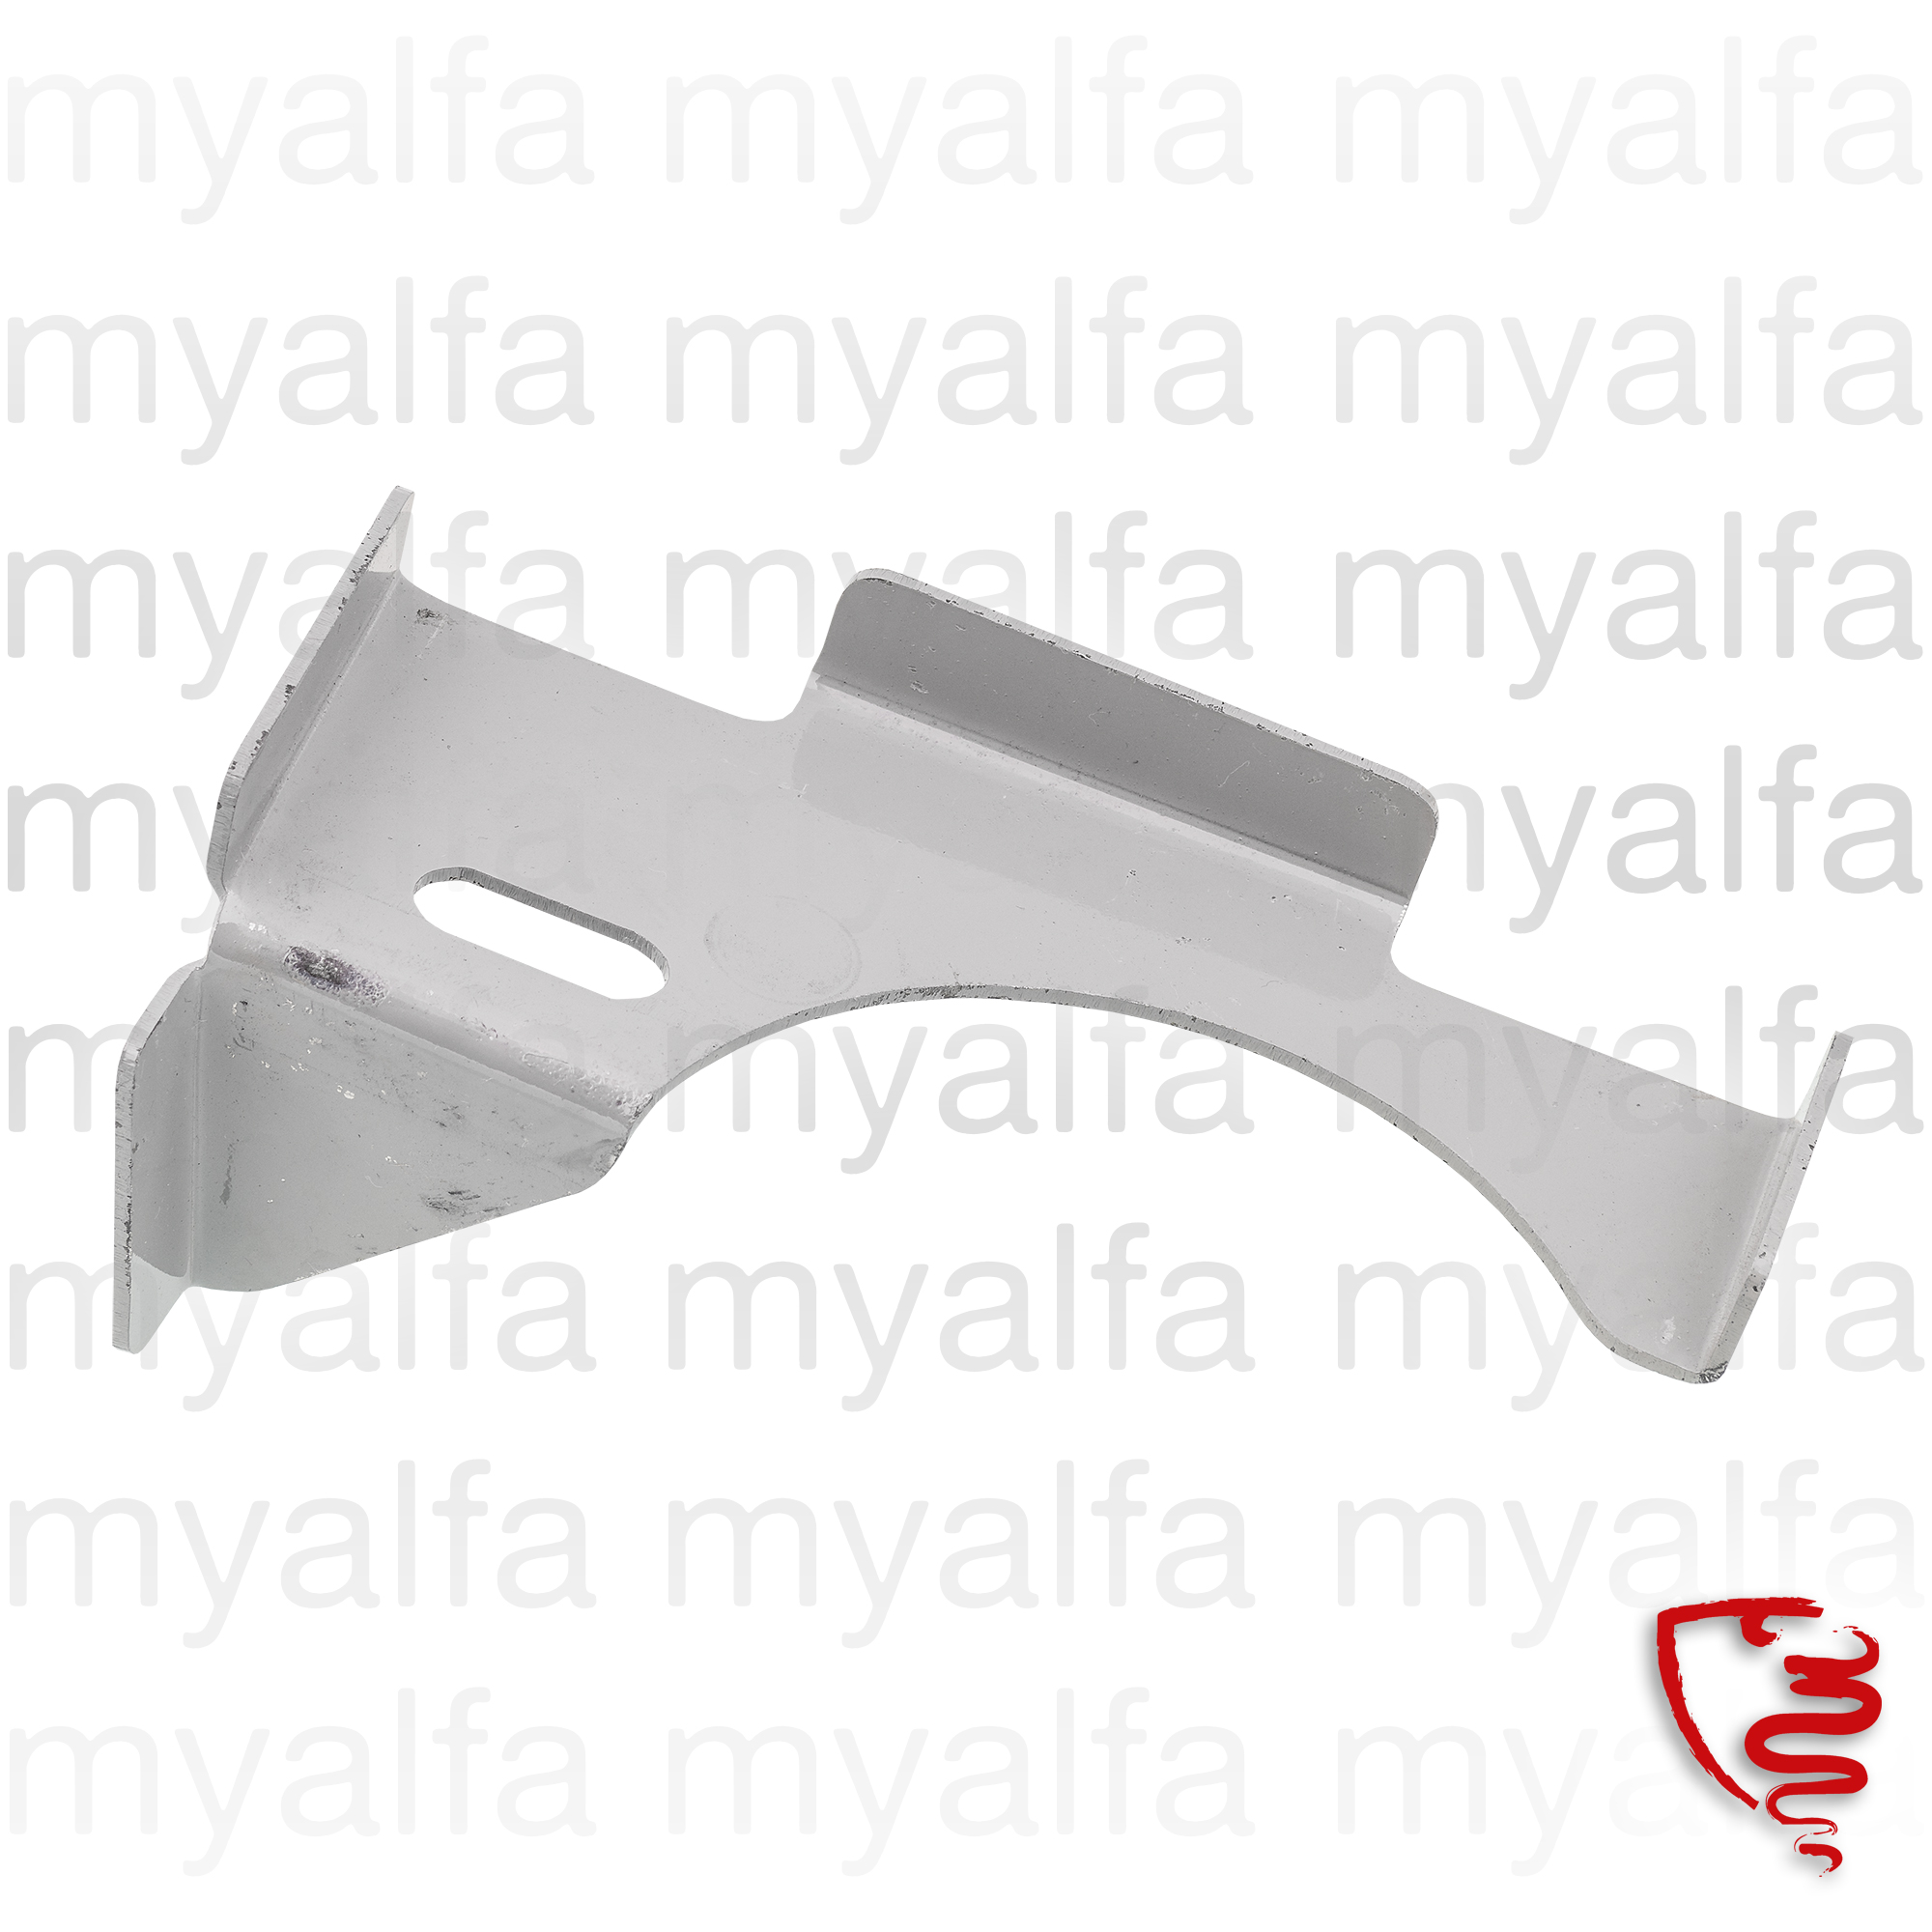 Exhaust support for mail background for 105/115, Coupe, Body parts, Panels, Rear